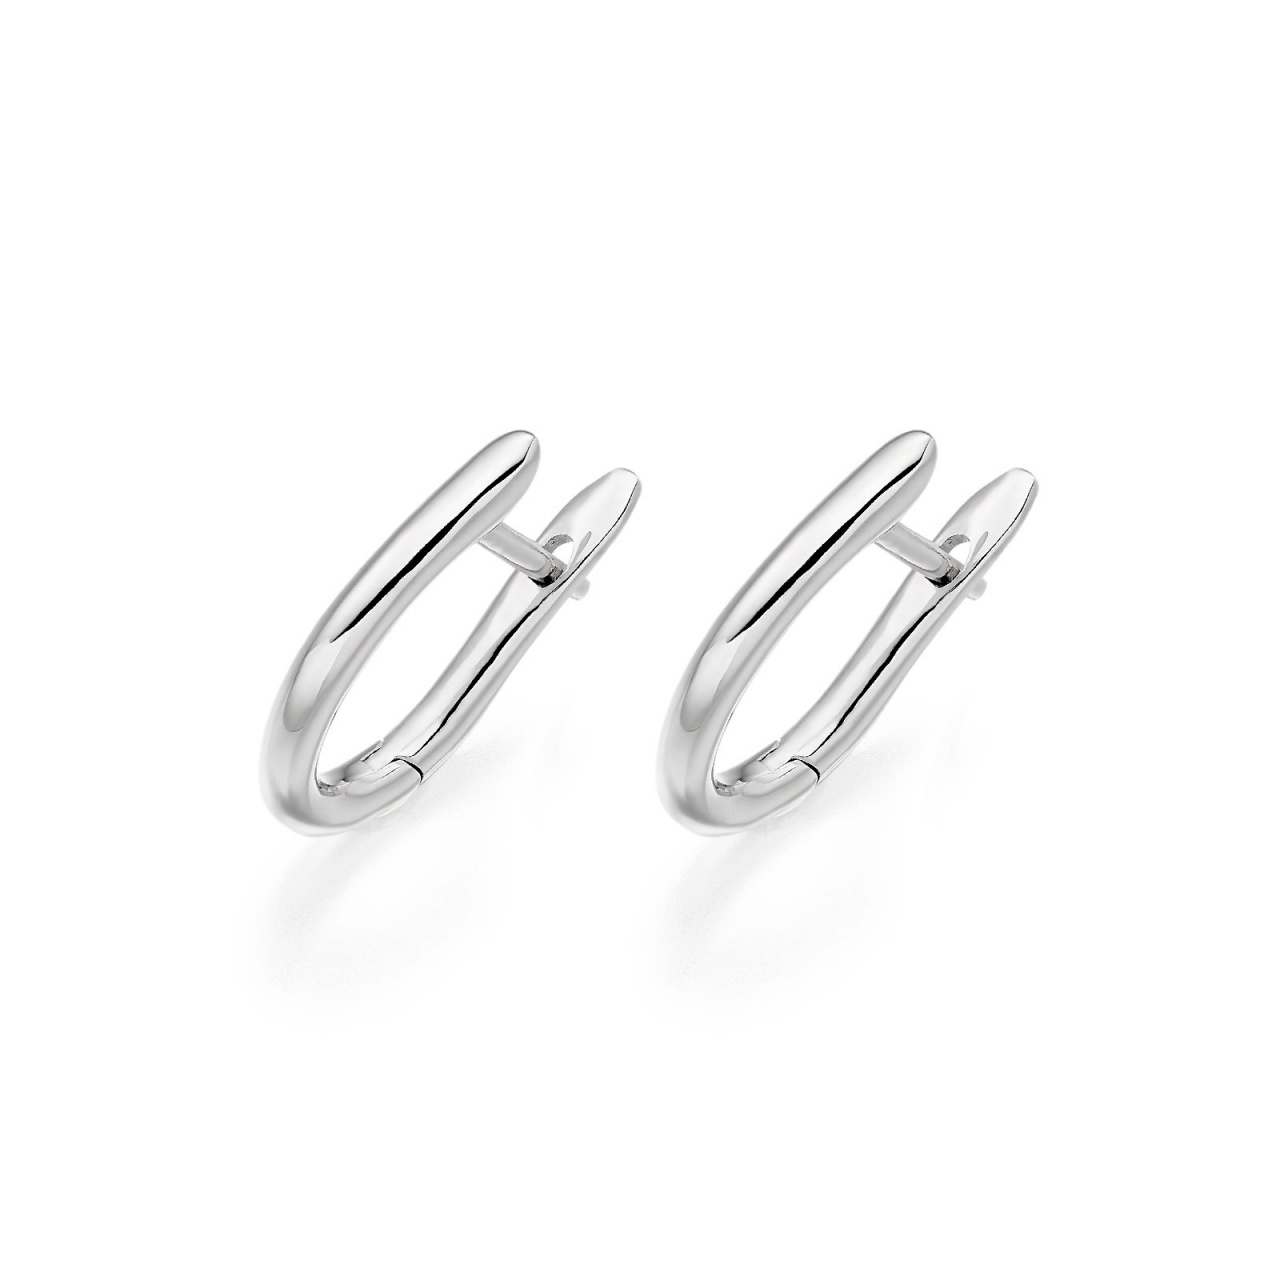 White Gold Huggie Earrings with Black Tahitian Pearls-TEBRWG1246-1